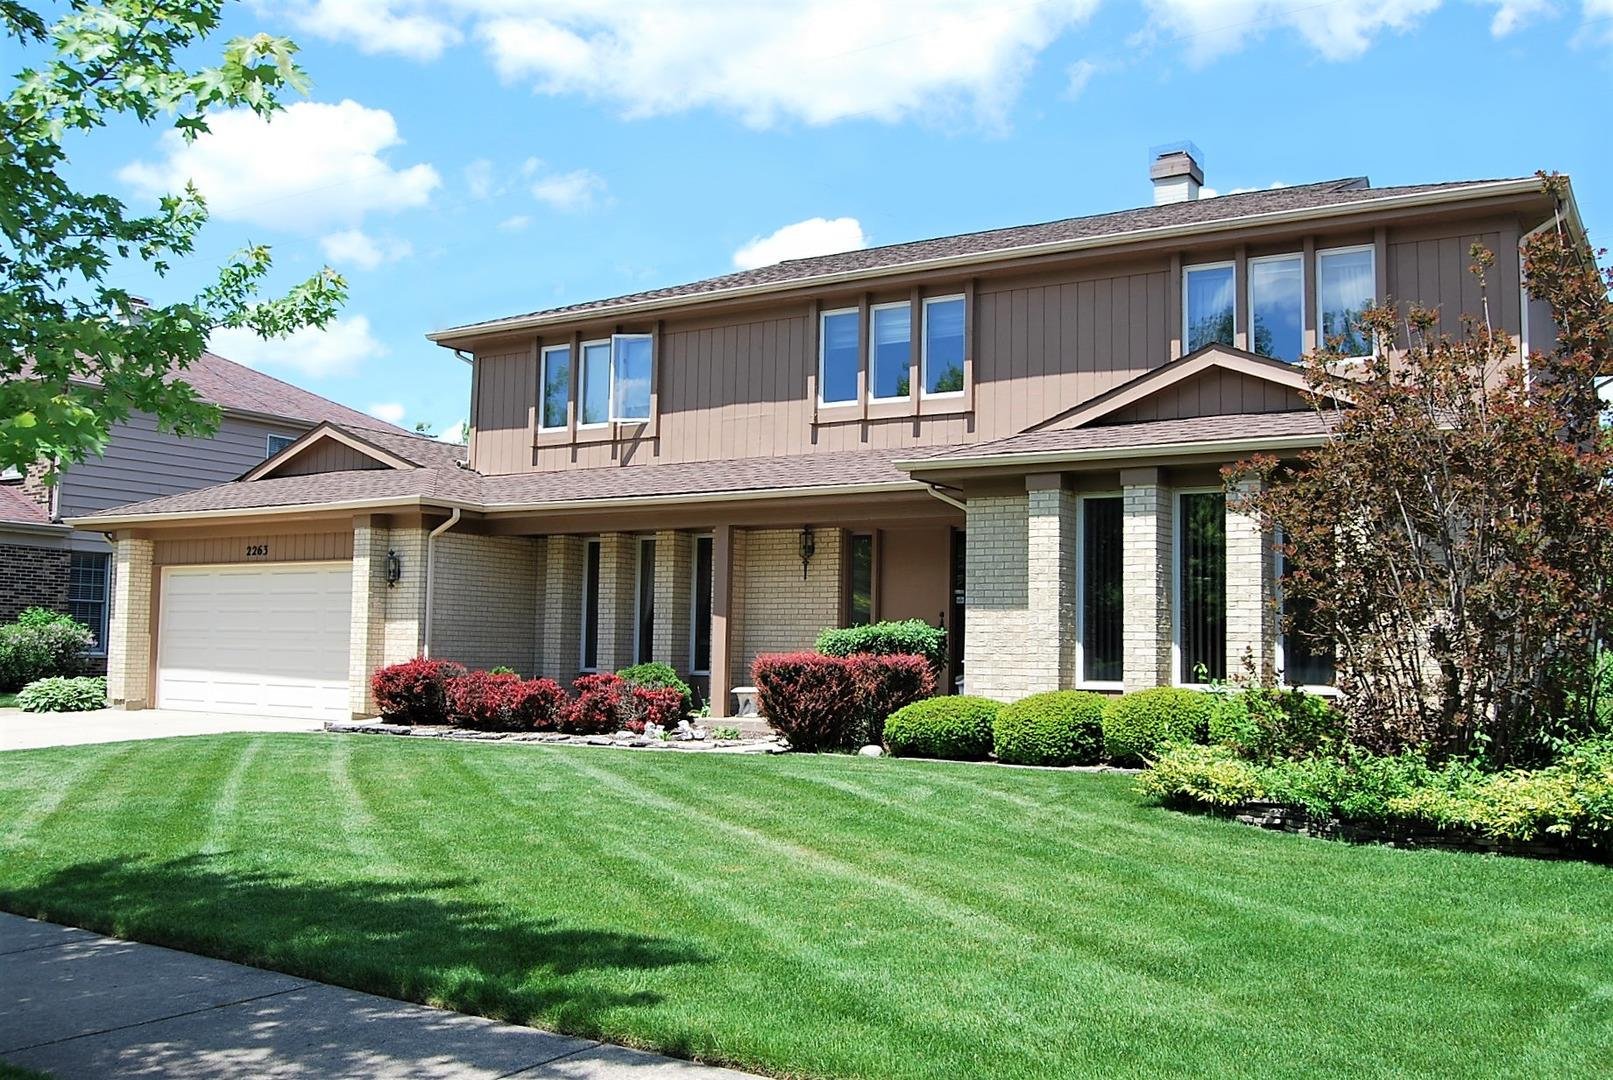 2263 N CHARTER POINT Drive, Arlington Heights, IL 60004 - #: 10839692